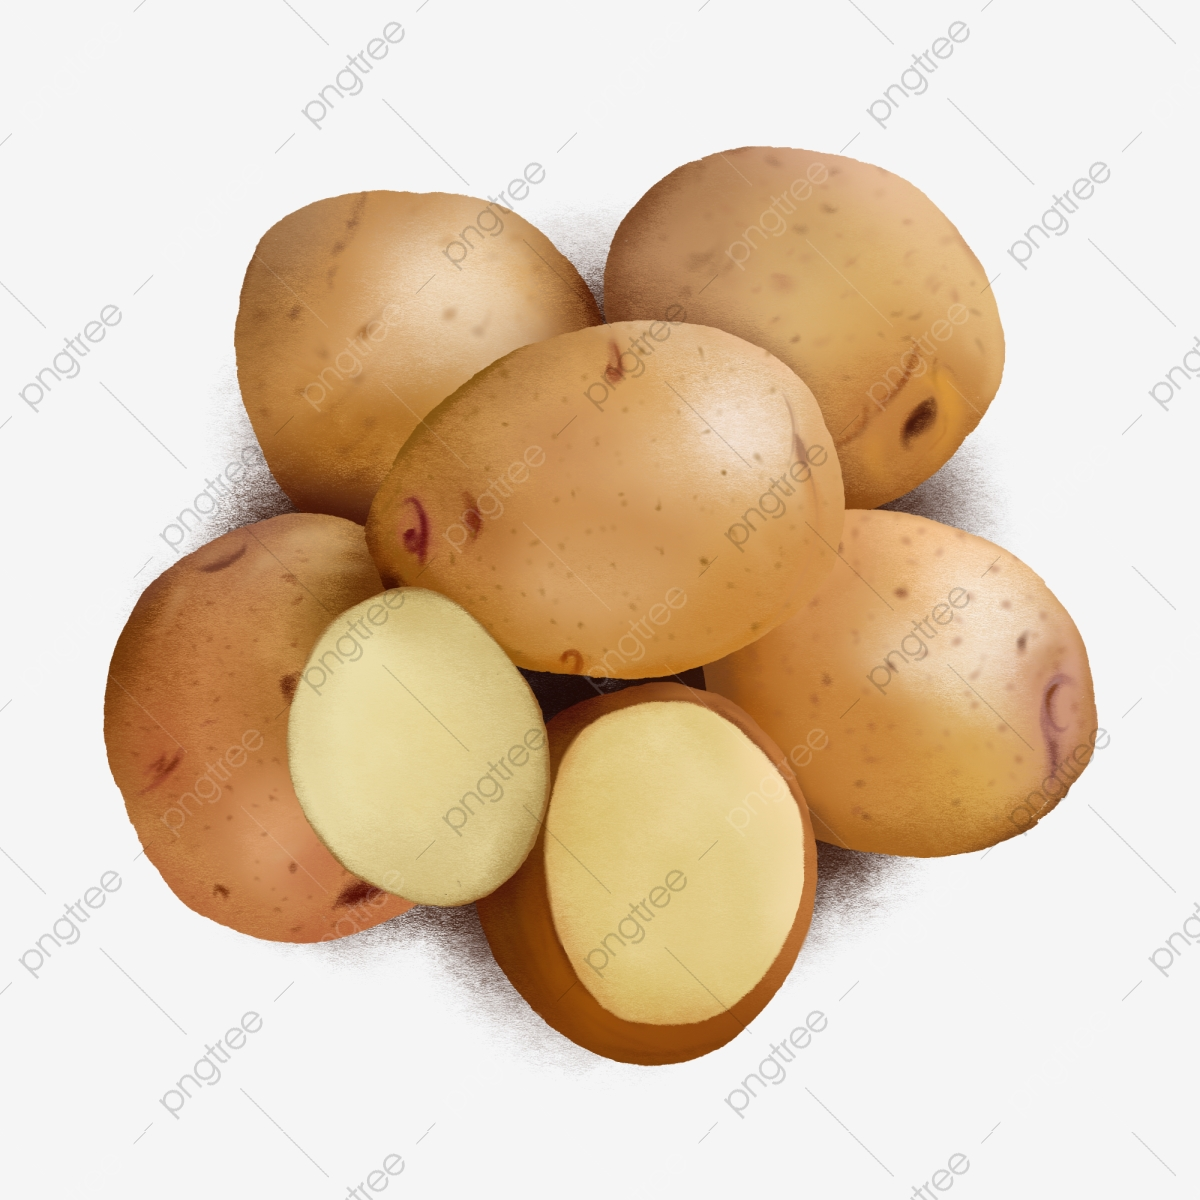 Potato Potatoes Sweet Potatoes Yam Png Transparent Clipart Image And Psd File For Free Download All images and logos are crafted with great workmanship. https pngtree com freepng potato 4361347 html